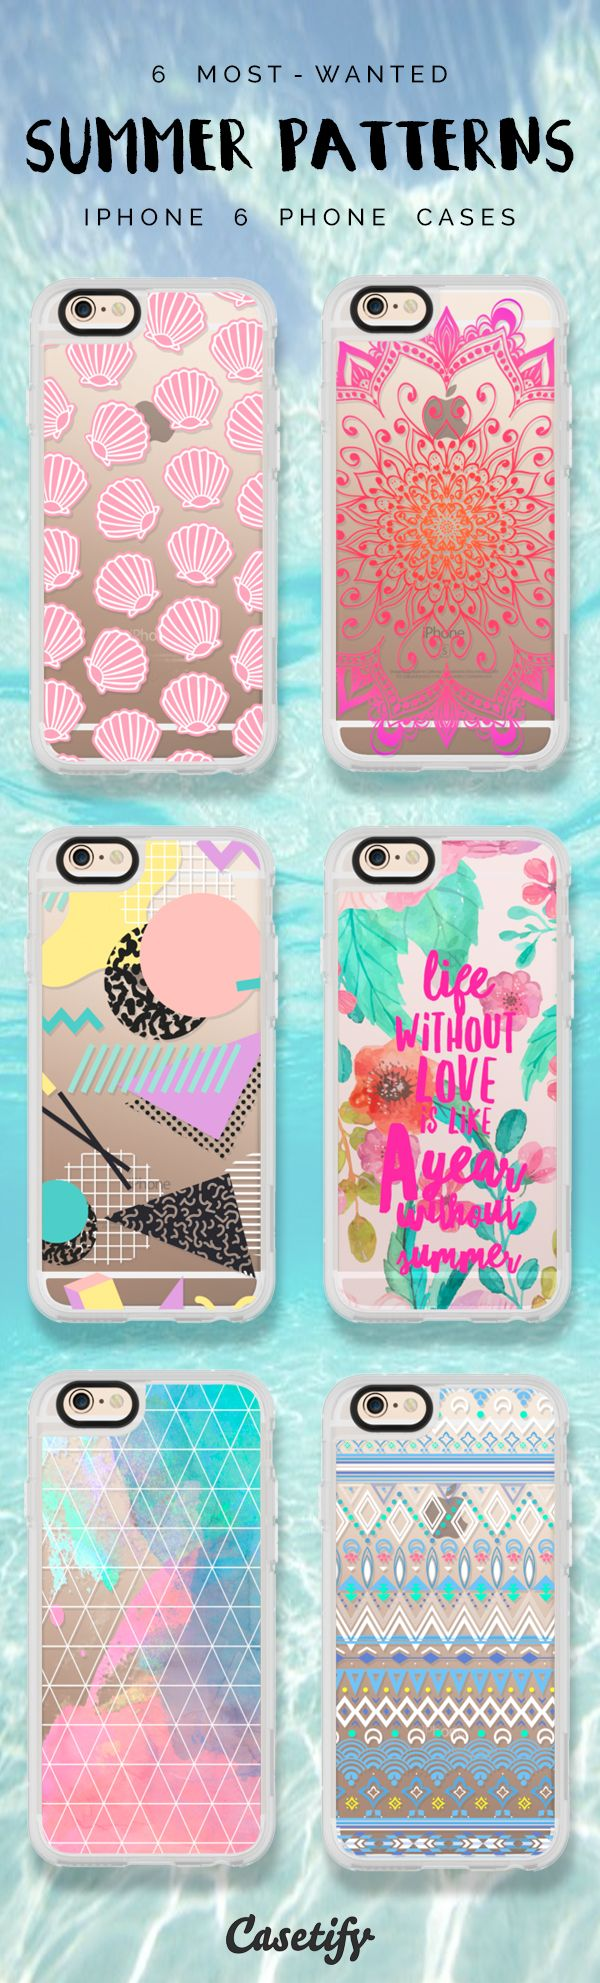 Most favourite Summer Patterns iPhone 6 protective phone case designs | Click through to see more iPhone phone case idea. Summer is upon us! >>> https://www.casetify.com/artworks/dLcFLTe4nw | @casetify  https://www.casetify.com/artworks/dLcFLTe4nw